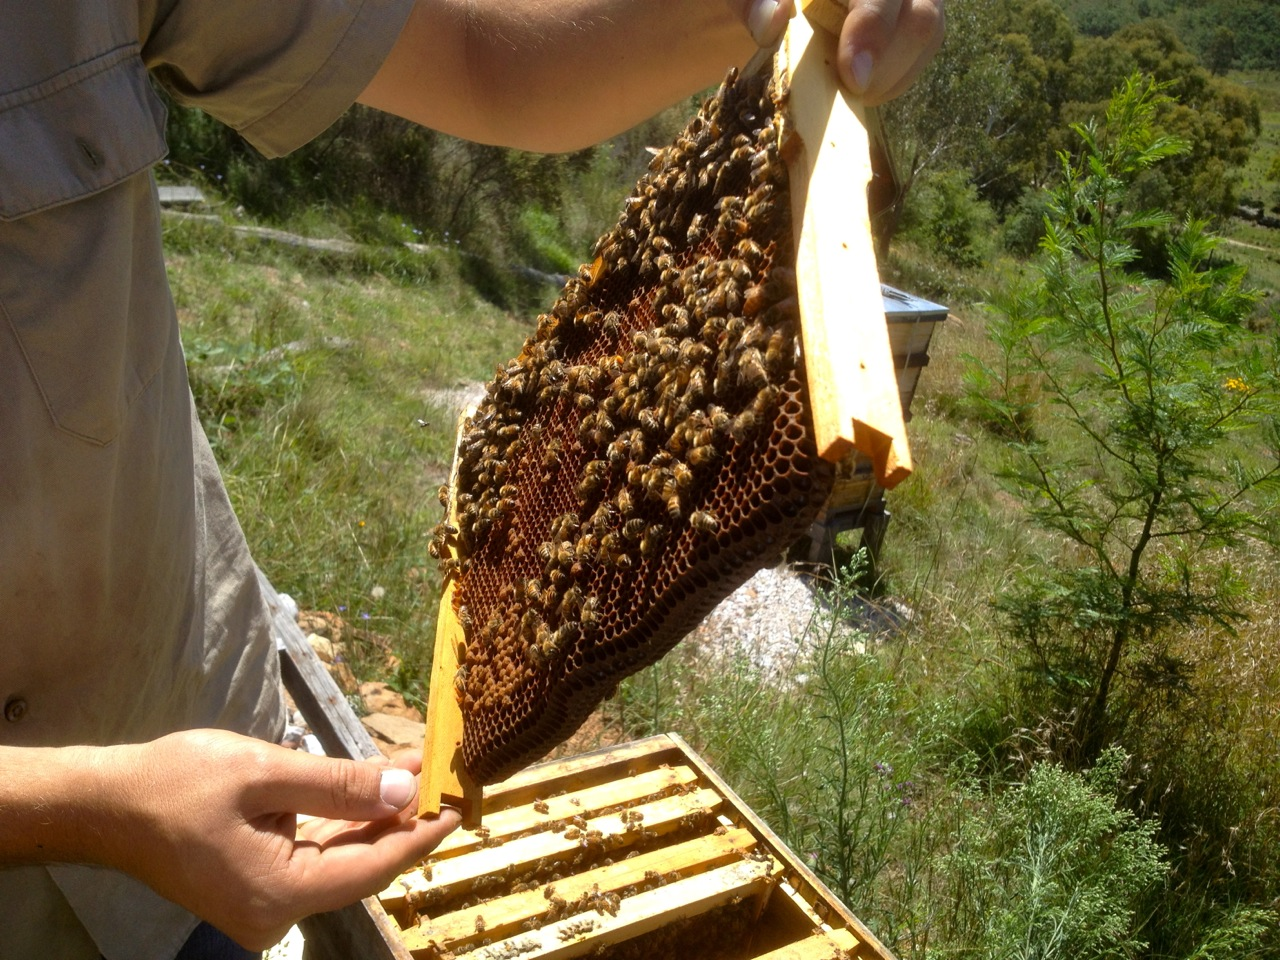 The bees. All good, queens laying, babies being born. But no good honey stores.